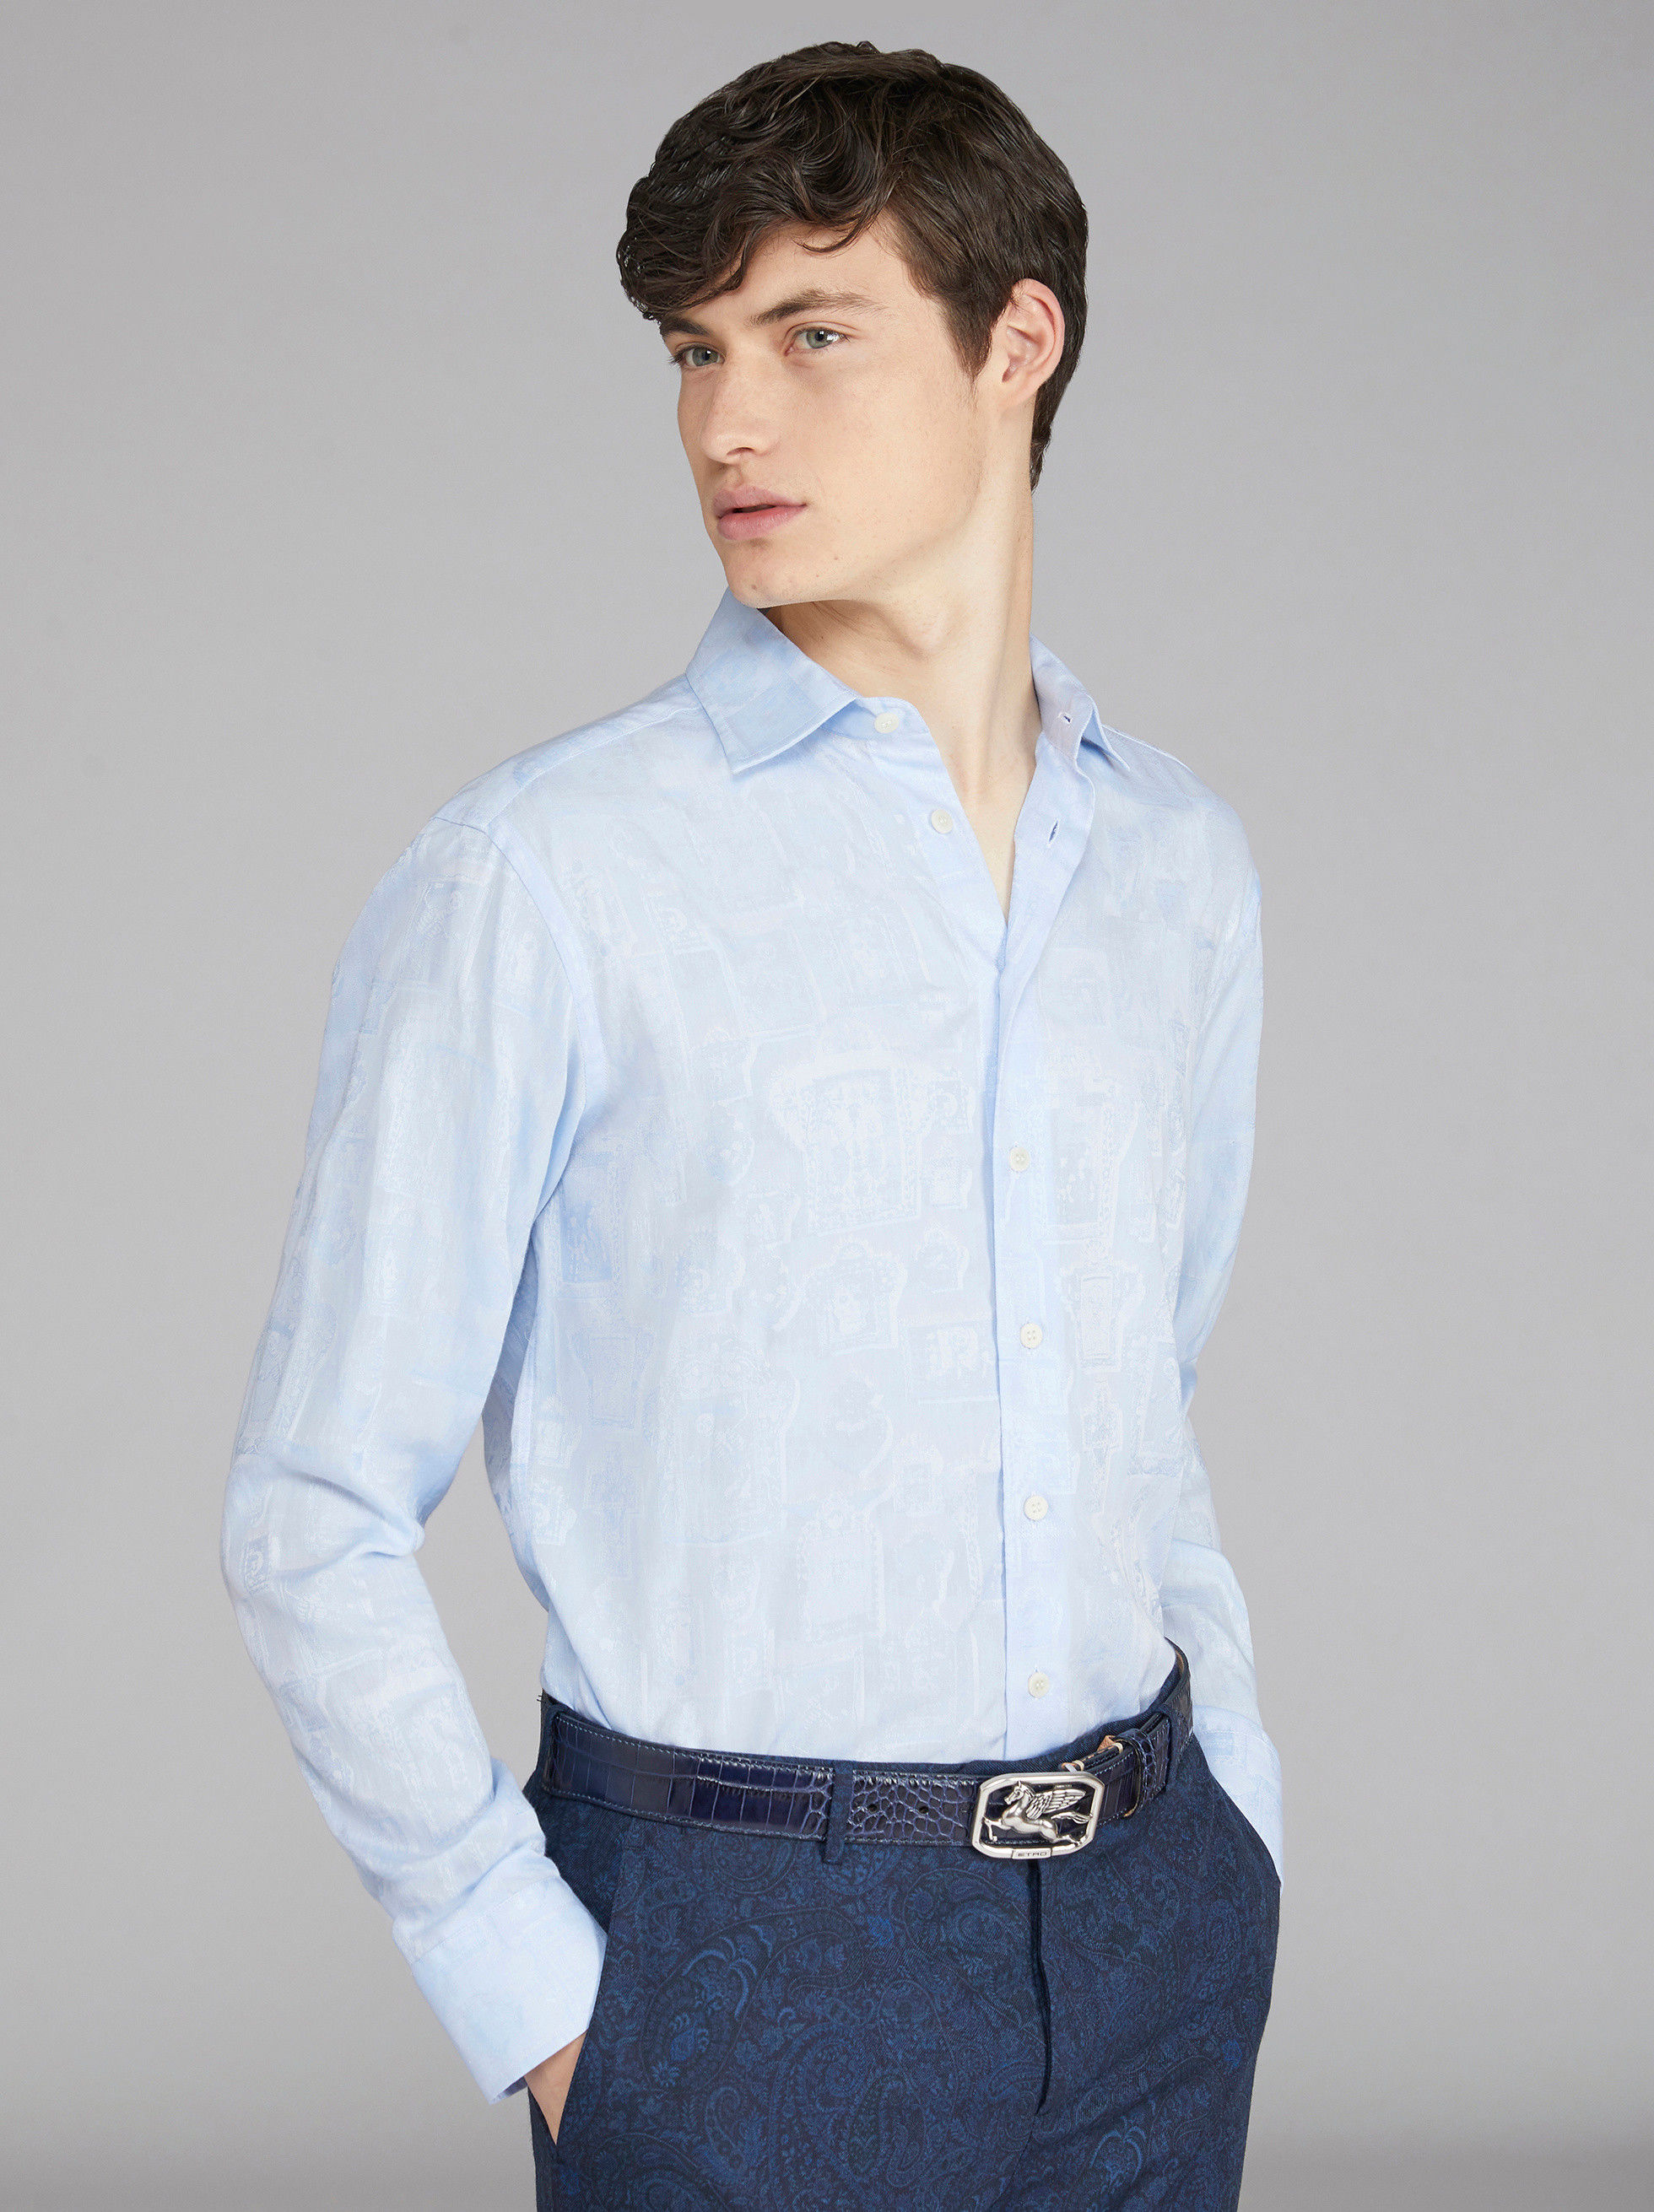 ORGANIC COTTON AND BENETROESSERE TENCEL™ SHIRT